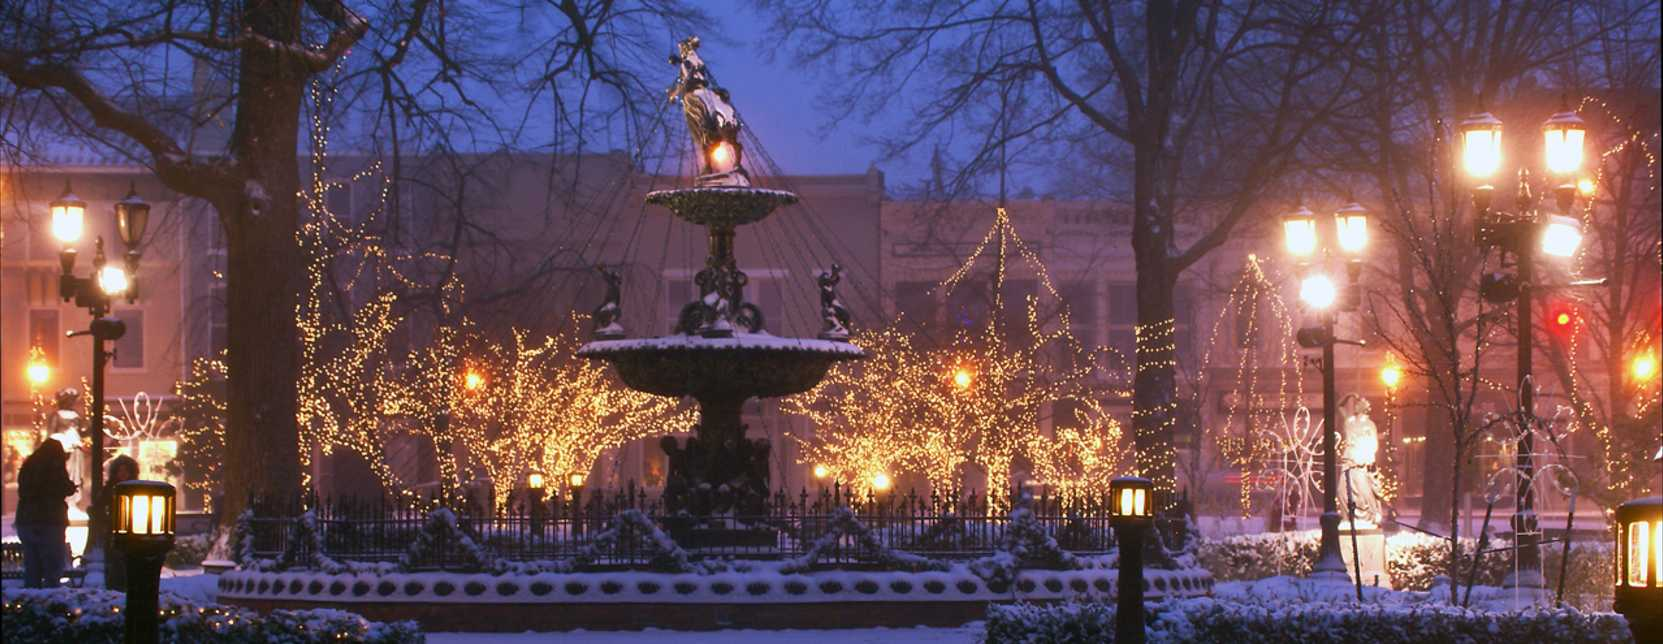 Christmas in Bowling Green KY | Events & Shows